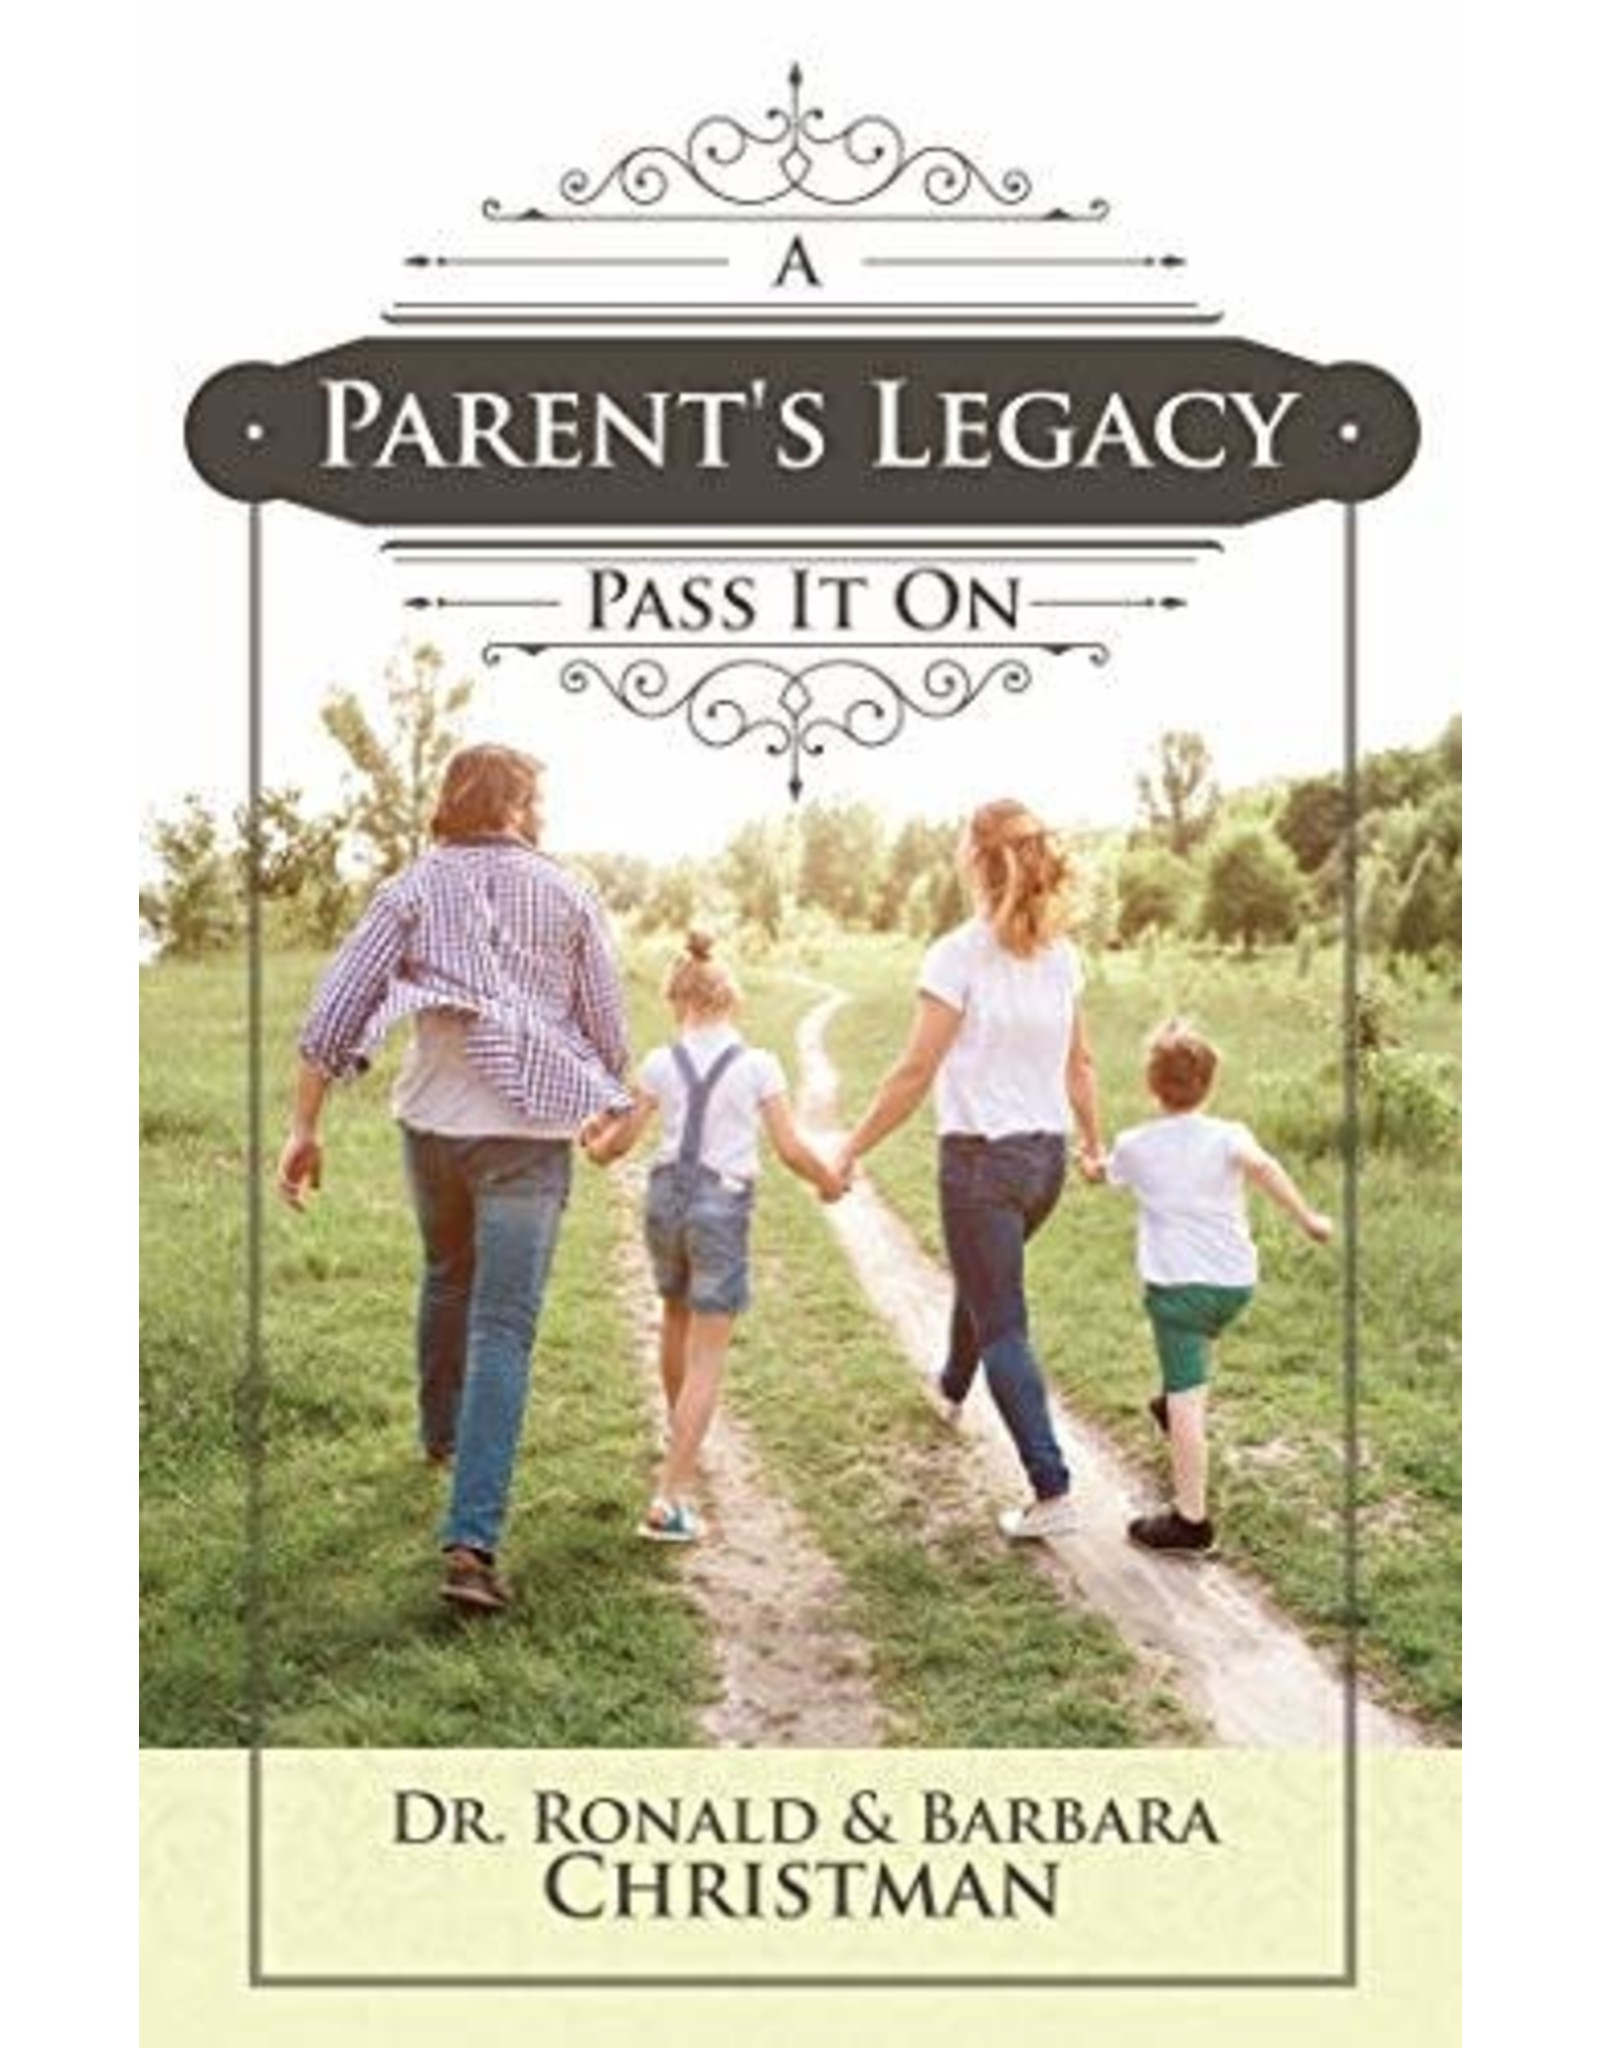 A Parent's Legacy: Pass It On by Dr. Ronald & Barbara Christman